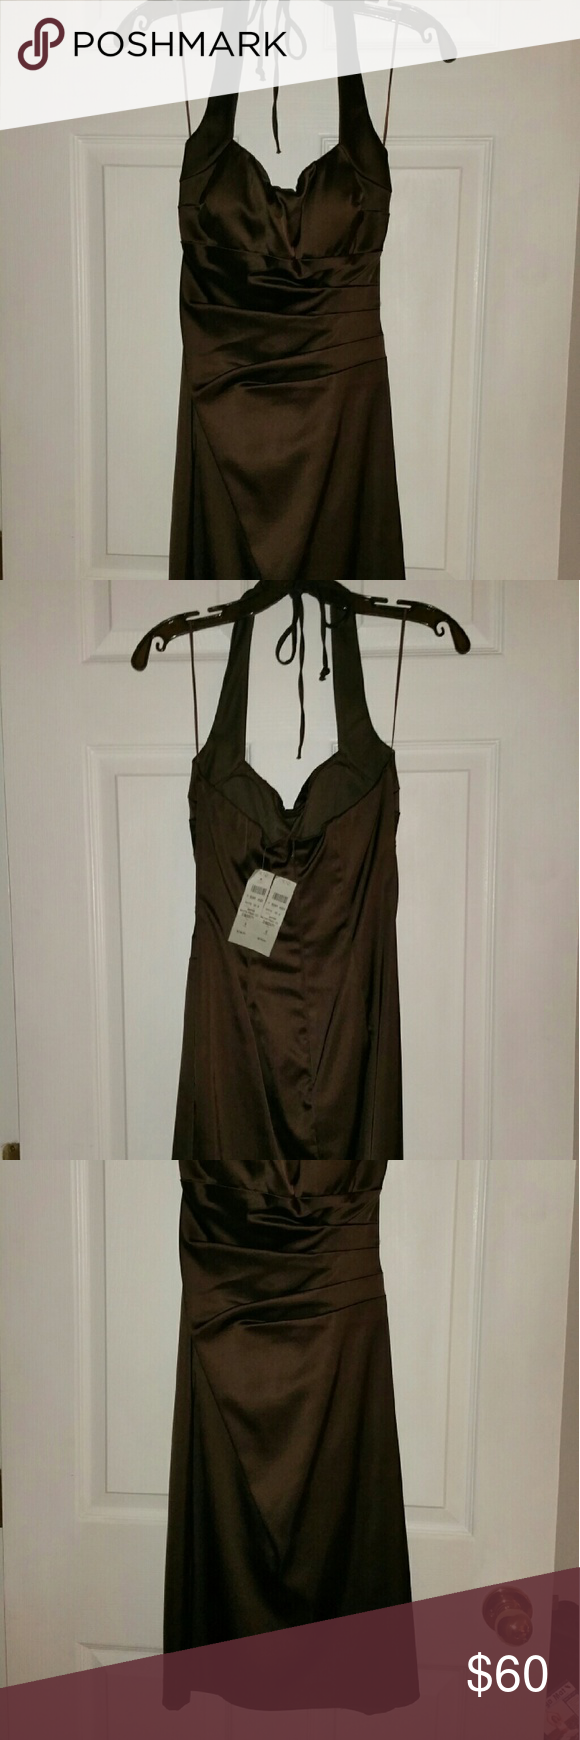 Le Chateau Brown Satin Halter Dress Sexy lined dress with bra cups Le Chateau Dresses Backless